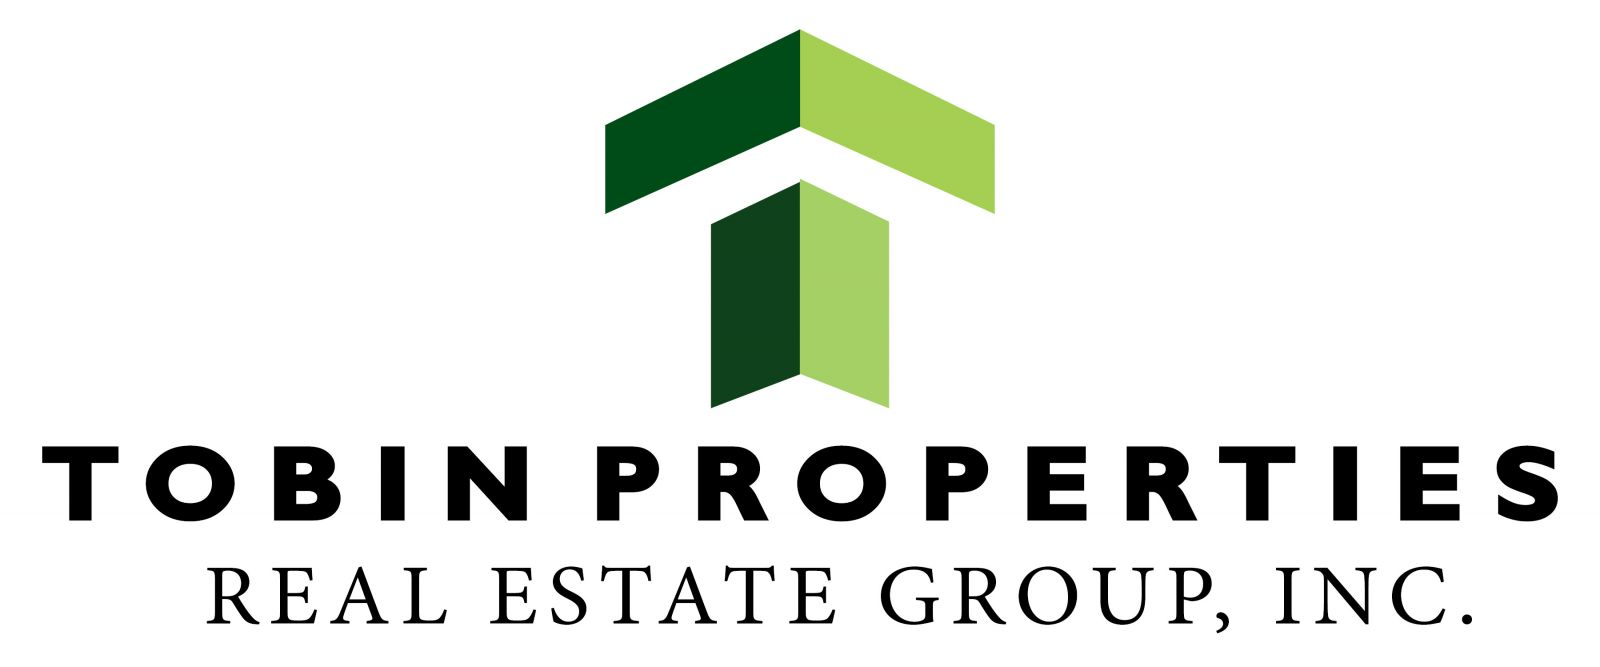 image of Tobin Properties Real Estate Group logo